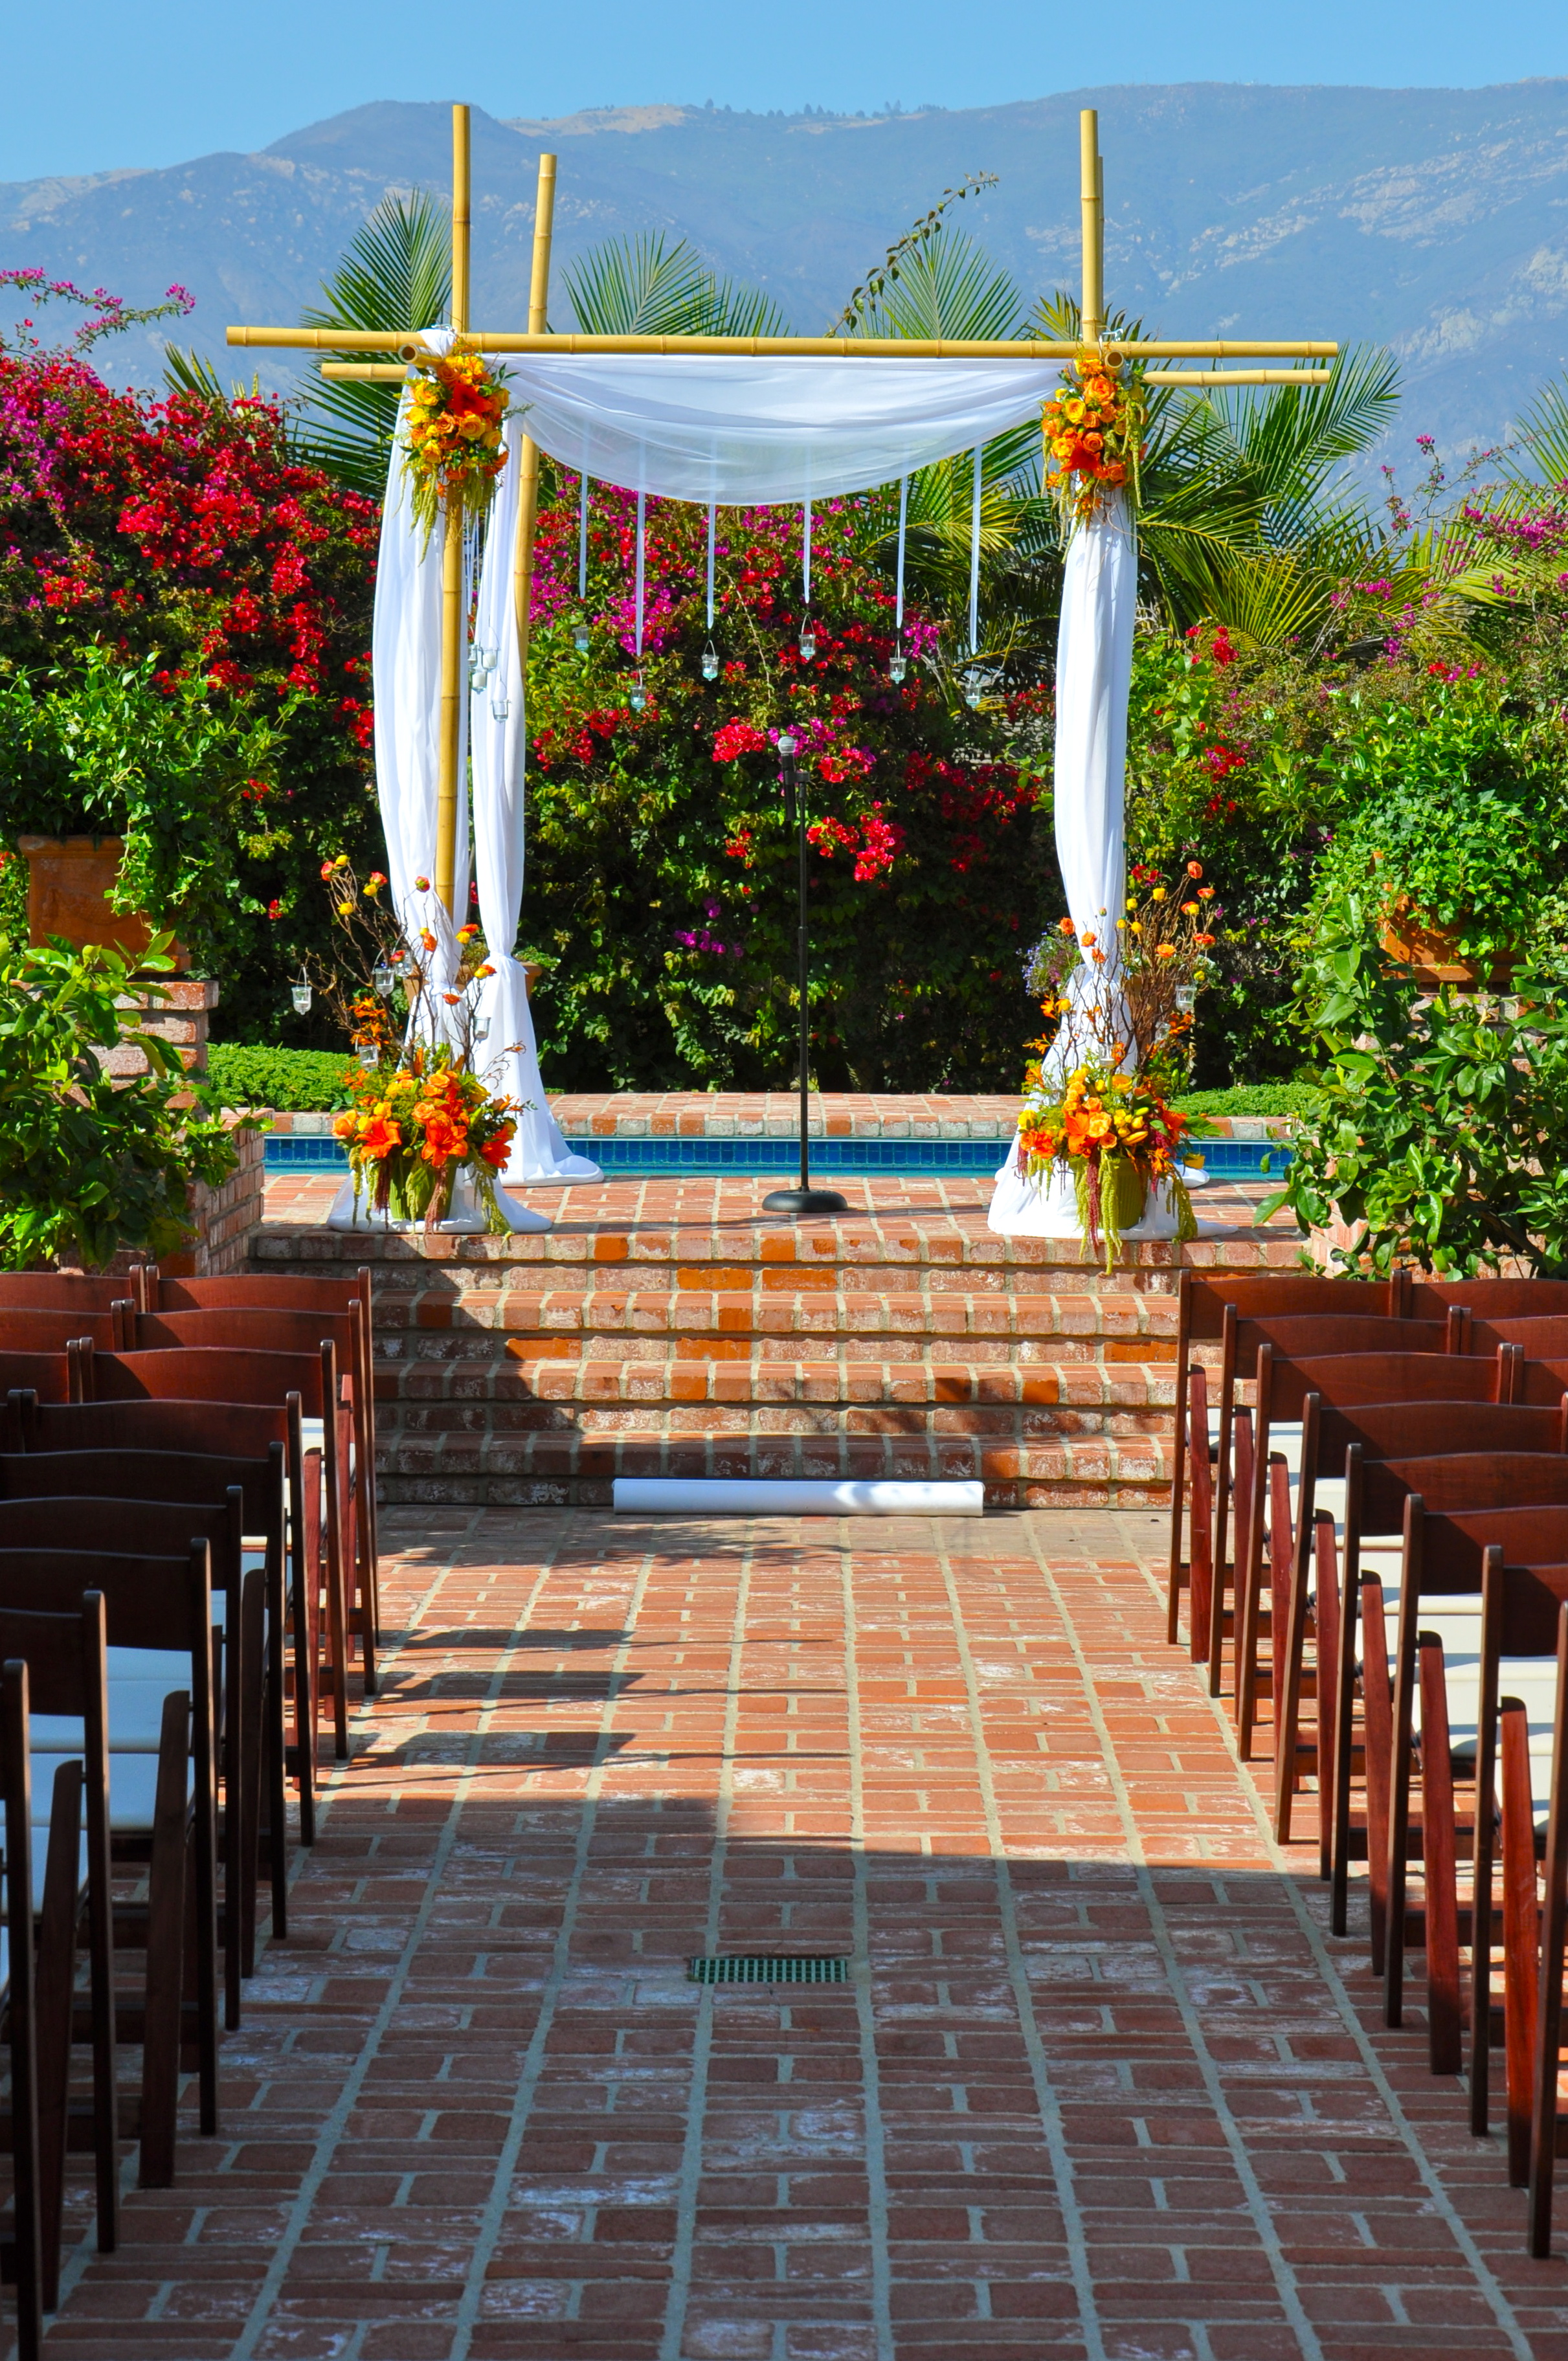 32 cool bamboo wedding decoration bamboo gazebo summer flower arch decorations flowerduet for bamboo wedding decoration ideas 49jwn junglespirit Image collections